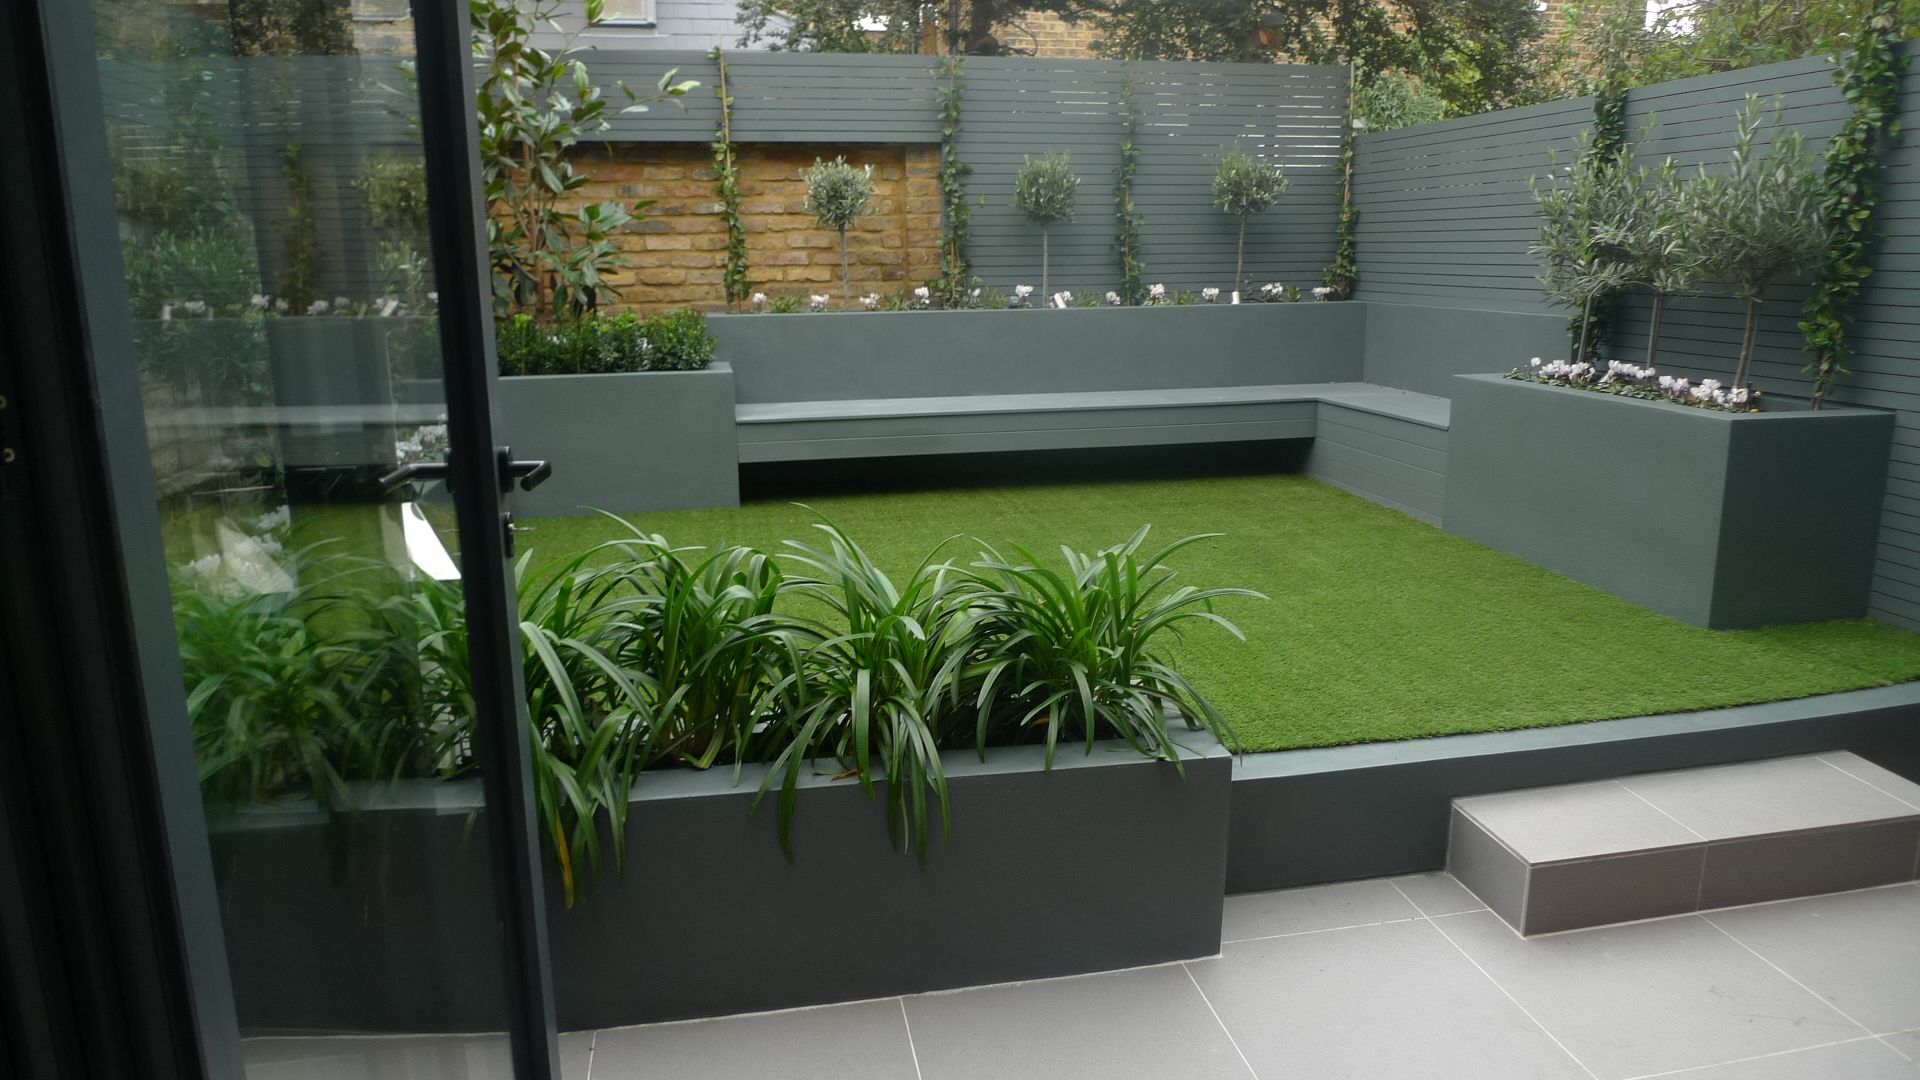 lawn gardencontemporary garden features decor with gree seagrass and l shape laminated grey bench also painted grey wall great small garden feature